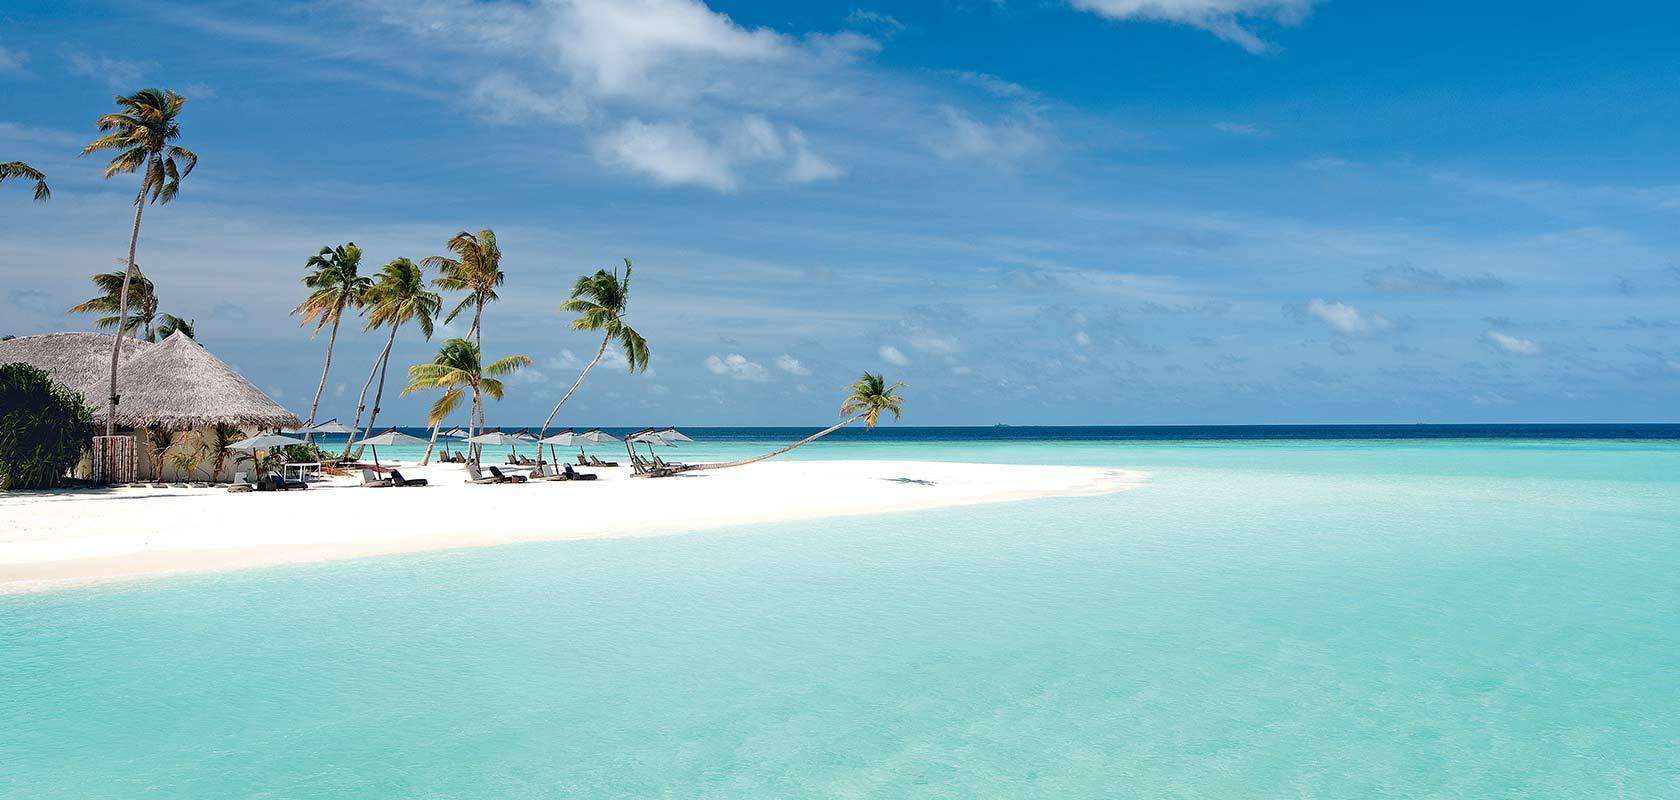 Maldives Luxury Holidays | The most exclusive island resorts